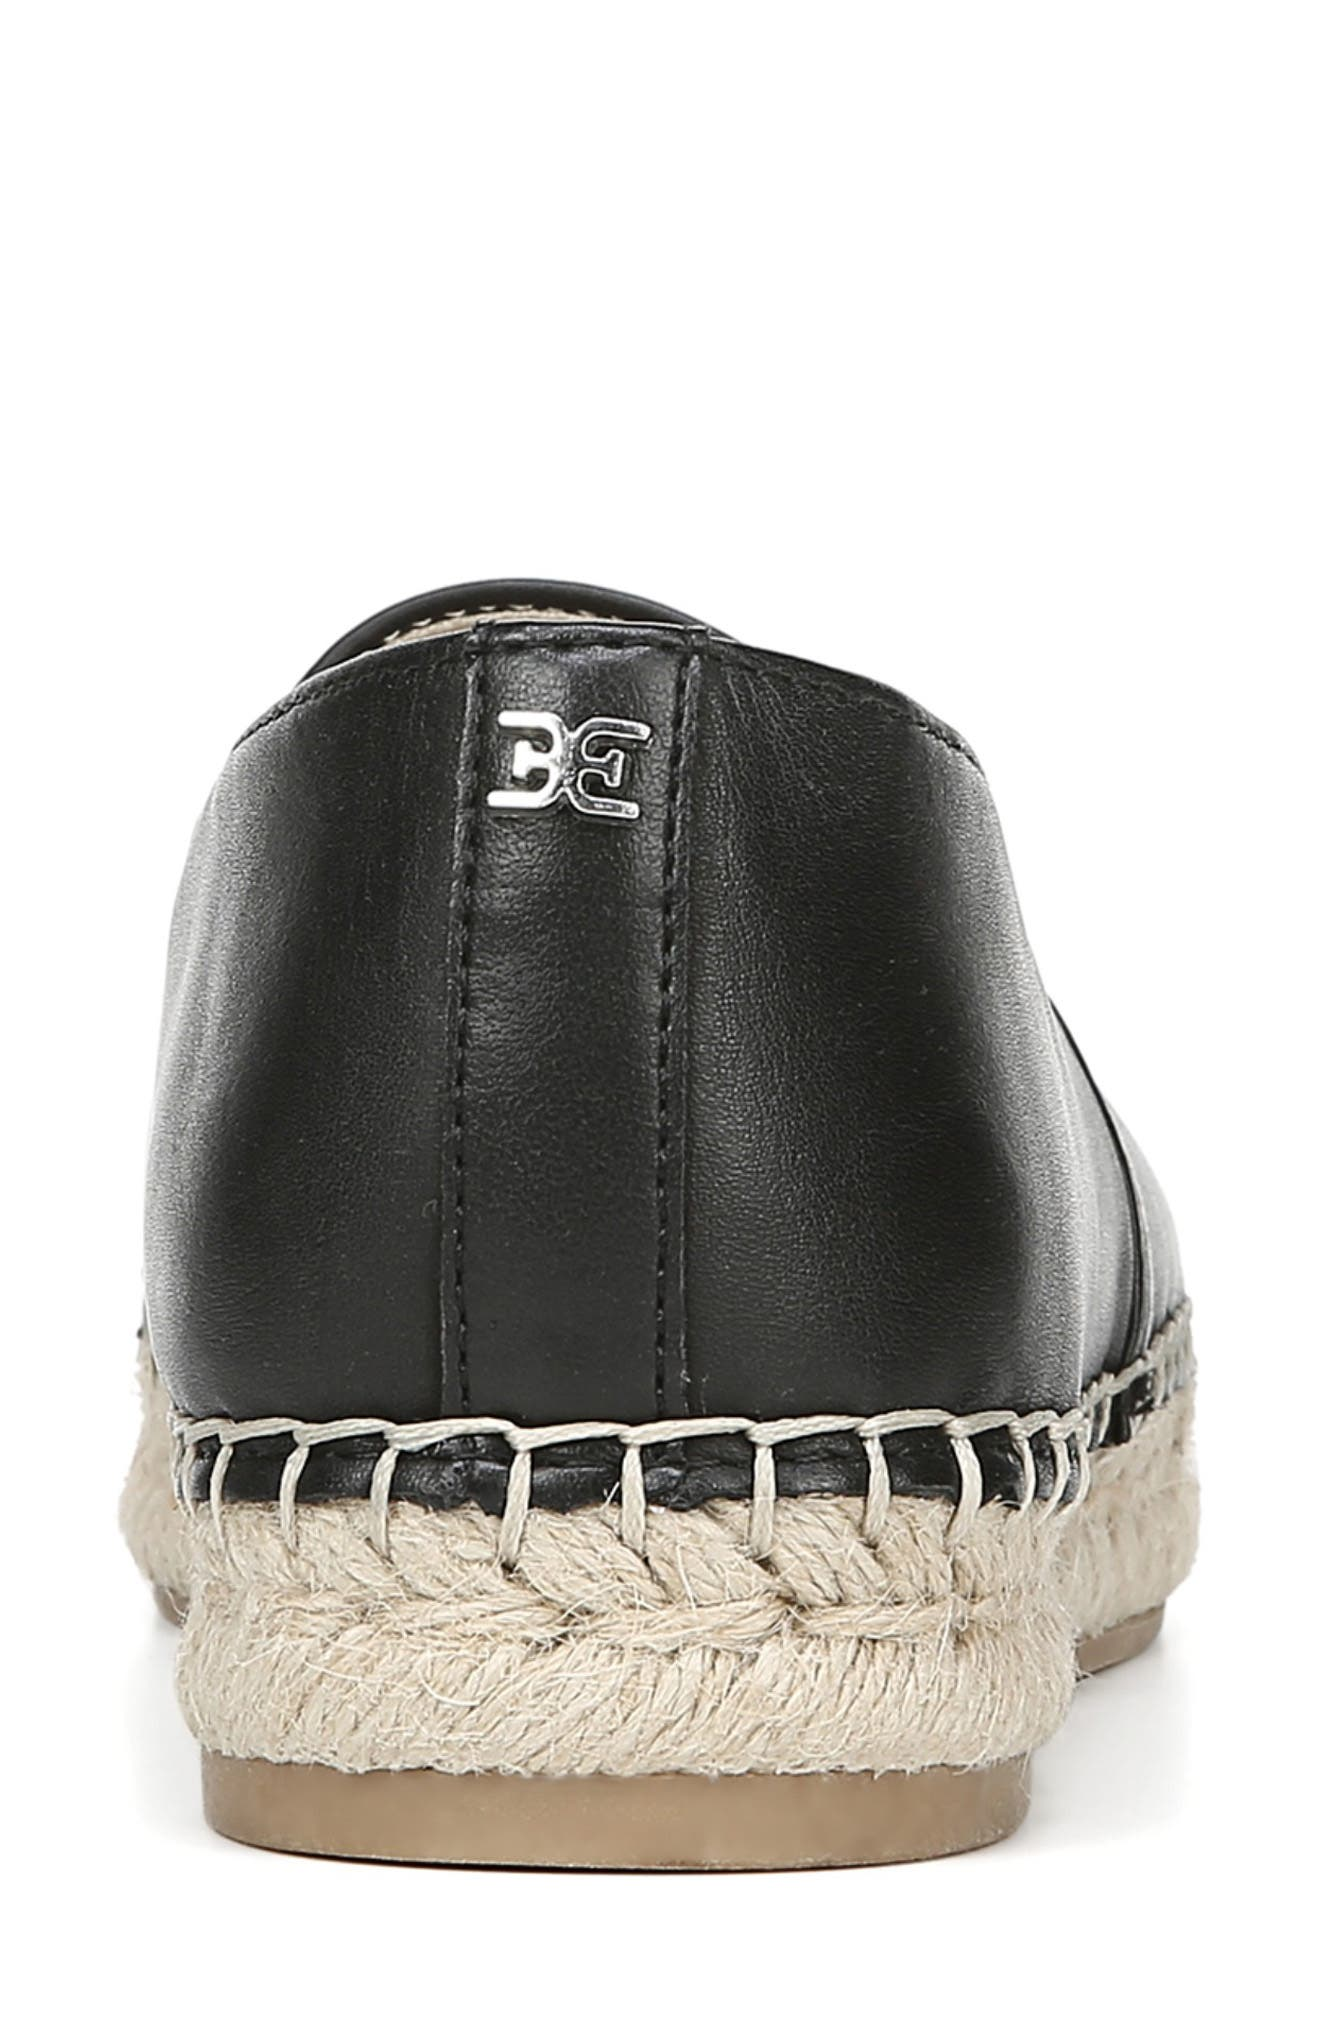 SAM EDELMAN, Krissy Espadrille Flat, Alternate thumbnail 7, color, BLACK LEATHER